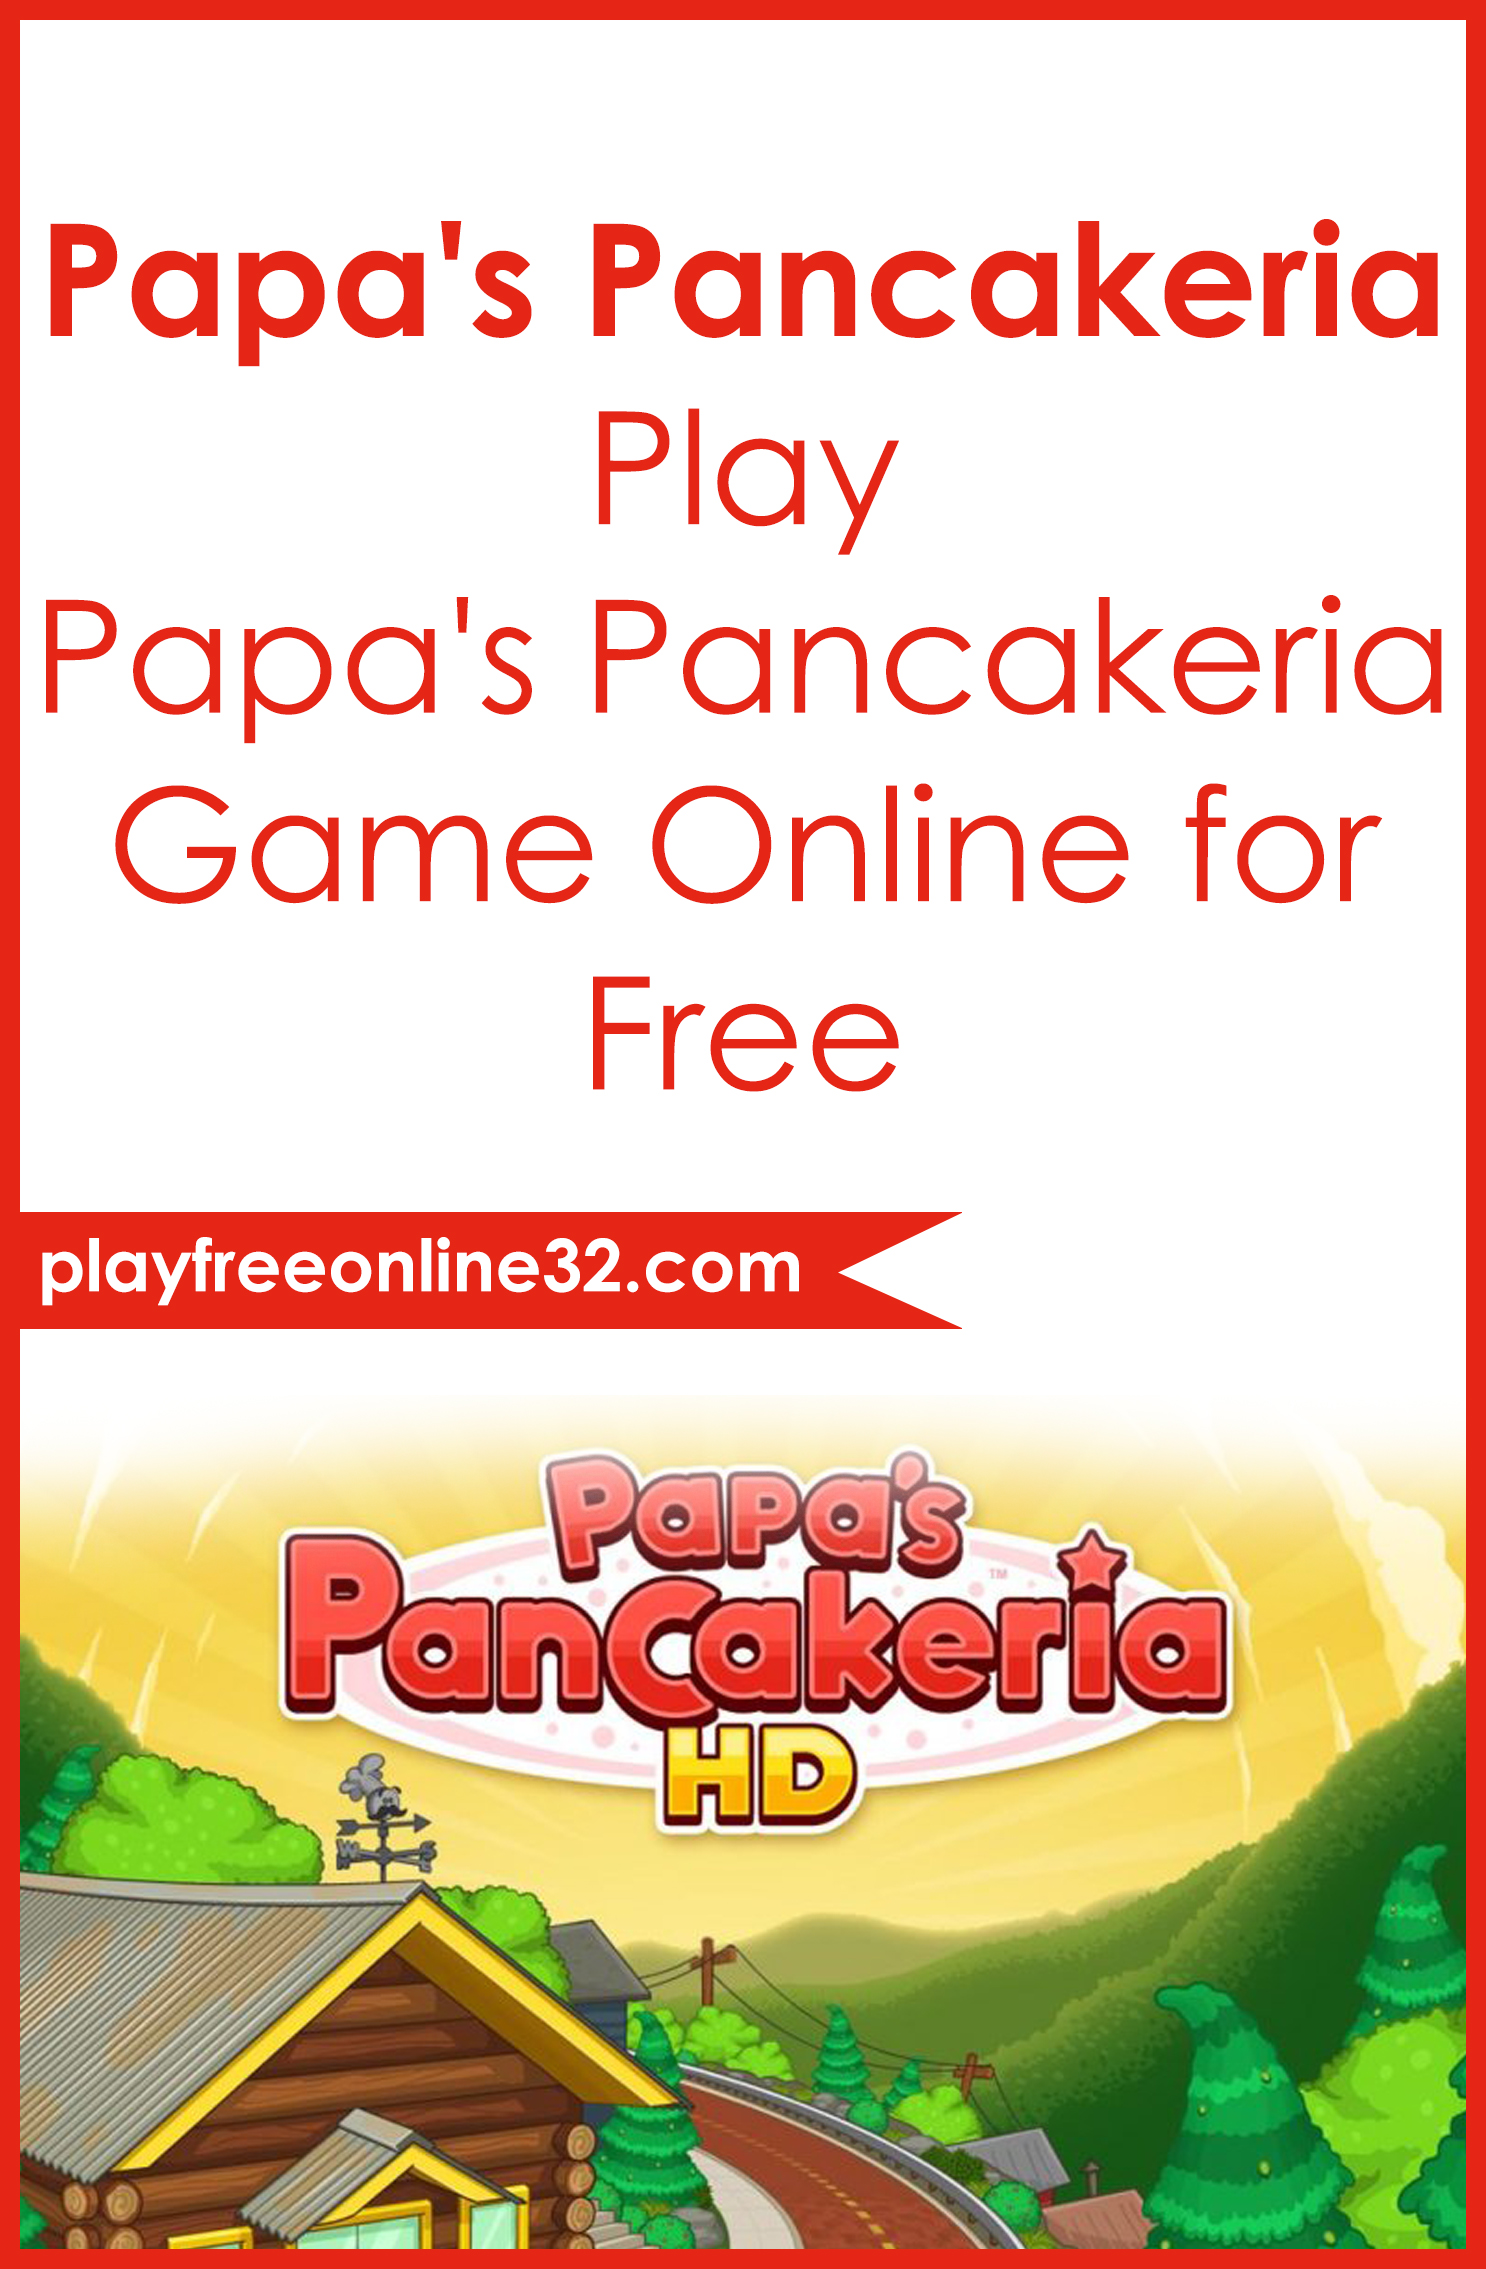 Papa's Pancakeria • Play Papa's Pancakeria Game Online for Free Pinterest